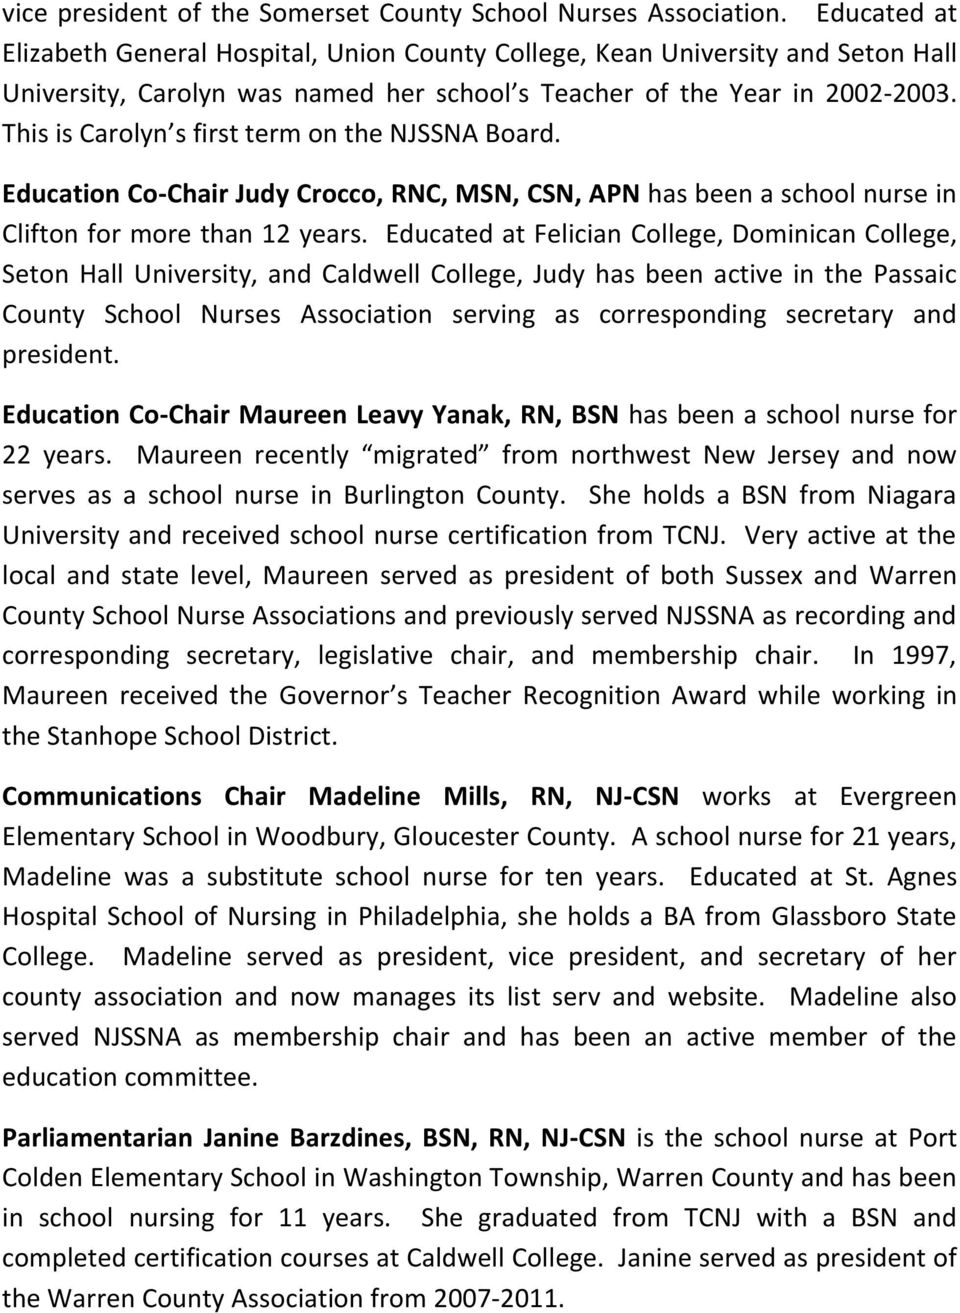 This is Carolyn s first term on the NJSSNA Board. Education Co-Chair Judy Crocco, RNC, MSN, CSN, APN has been a school nurse in Clifton for more than 12 years.